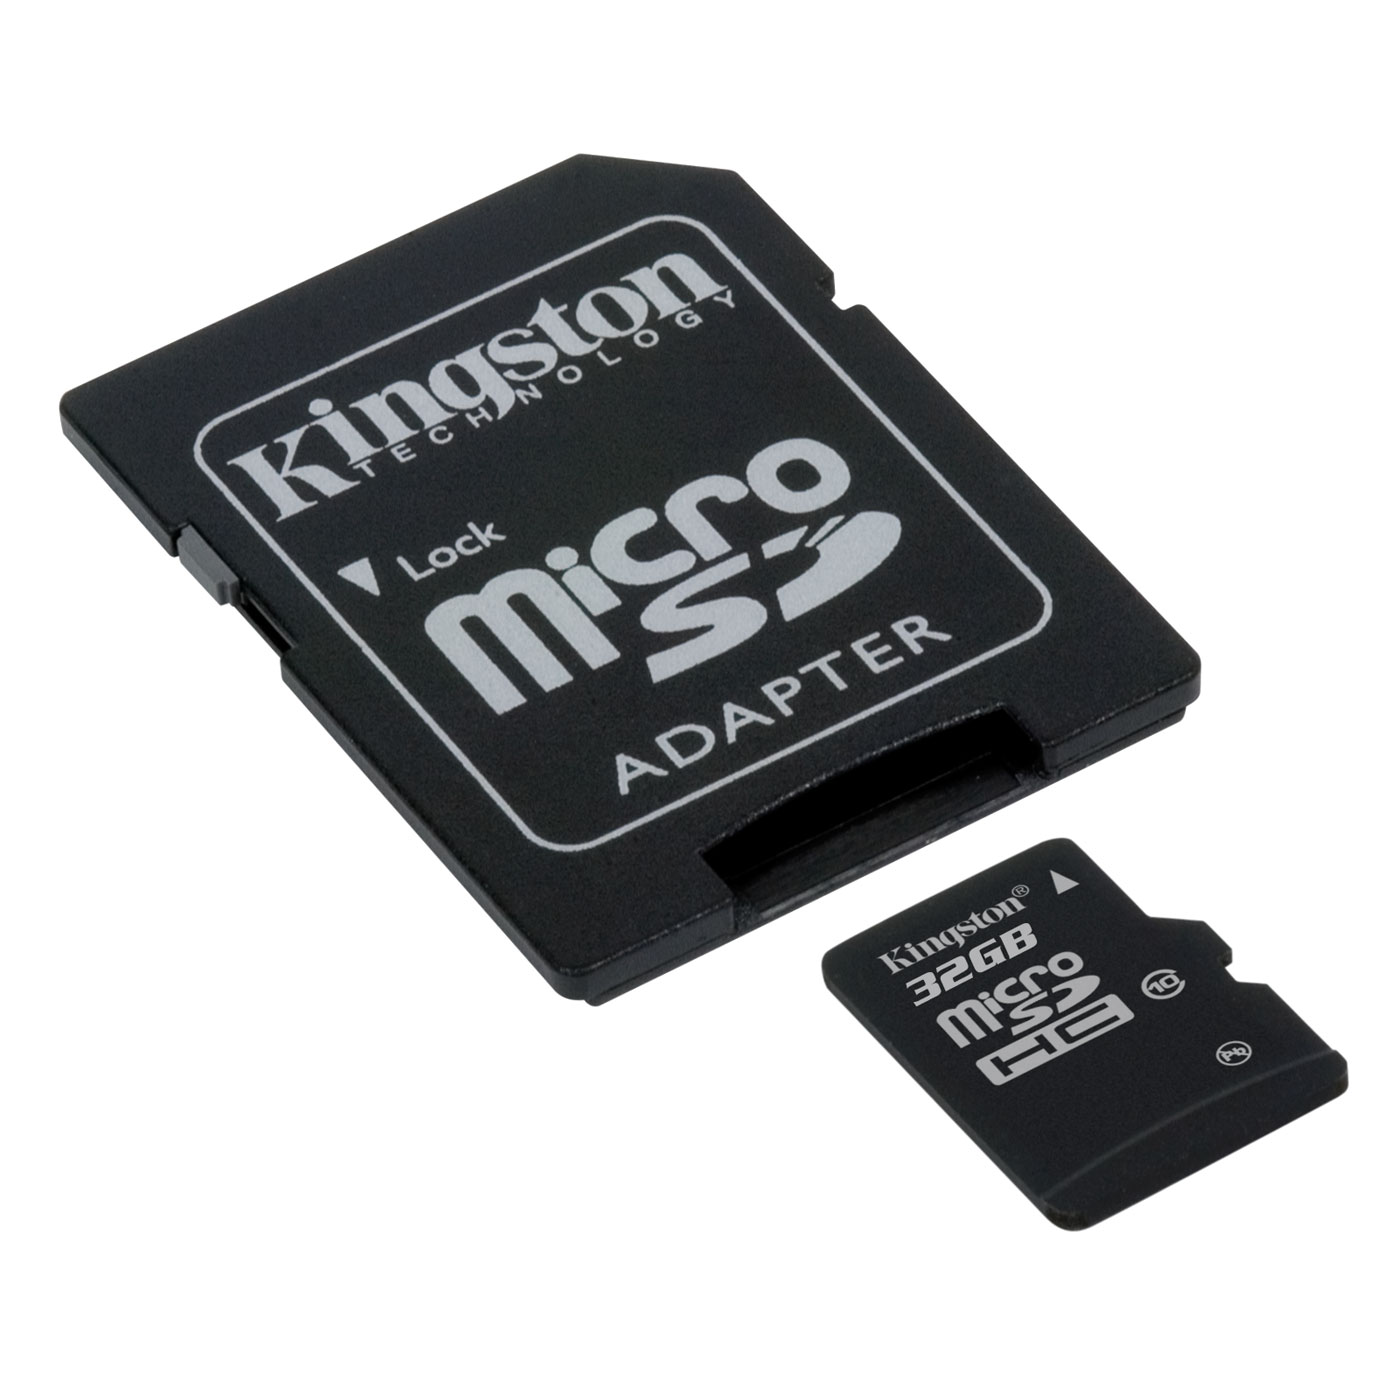 kingston microsdhc 32 go class 10 adaptateur sdhc sdc10 32gb achat vente carte m moire. Black Bedroom Furniture Sets. Home Design Ideas